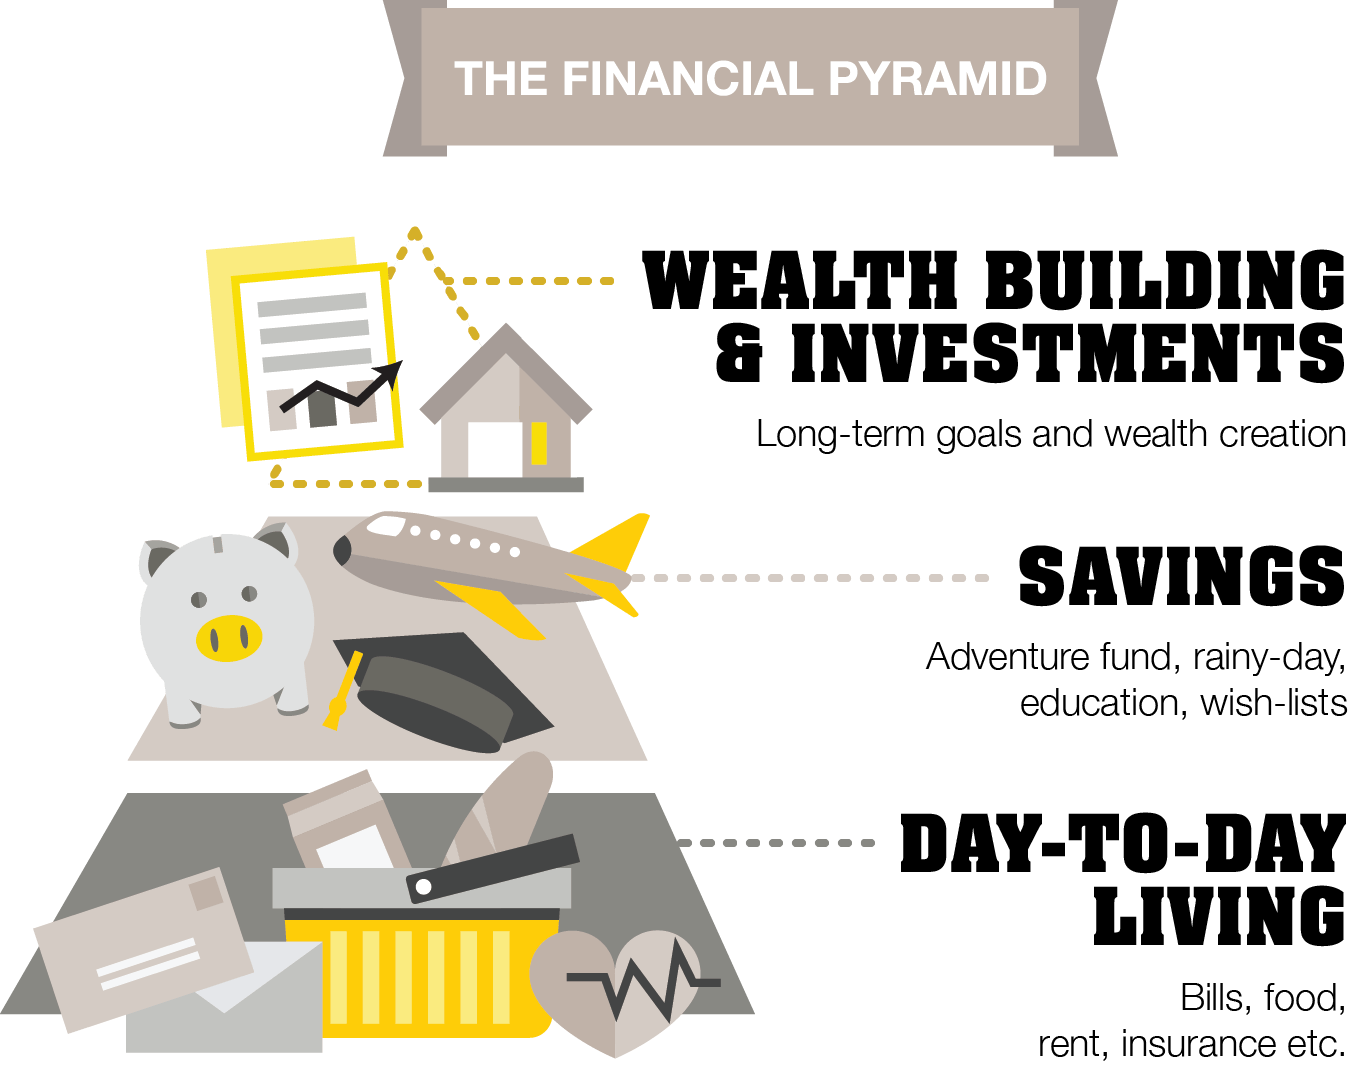 Infographic showing a pyramid. At the base of the pyramid is DAY-TO-DAY LIVING - Bills and food, rent, insurance etc. On top of this tapering in is SAVINGS Adventure fund, rainy-day, education, wish-list. On top of this, tapering again and indicating a smaller allocation is WEALTH BUILDING & INVESTMENTS - Long-term goals and wealth creation.